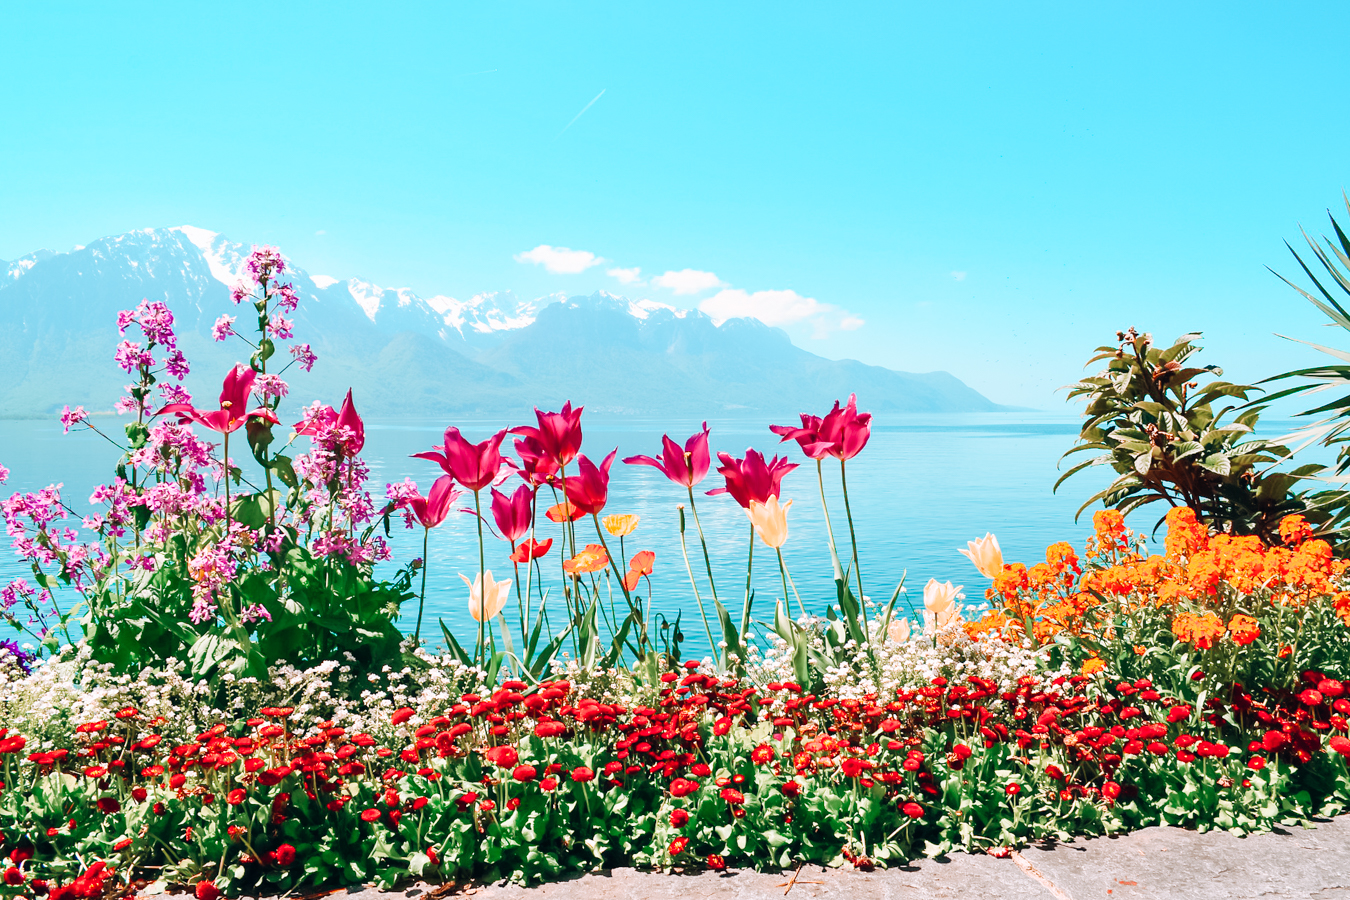 Beautiful flowers at Lake Geneva in Switzerland